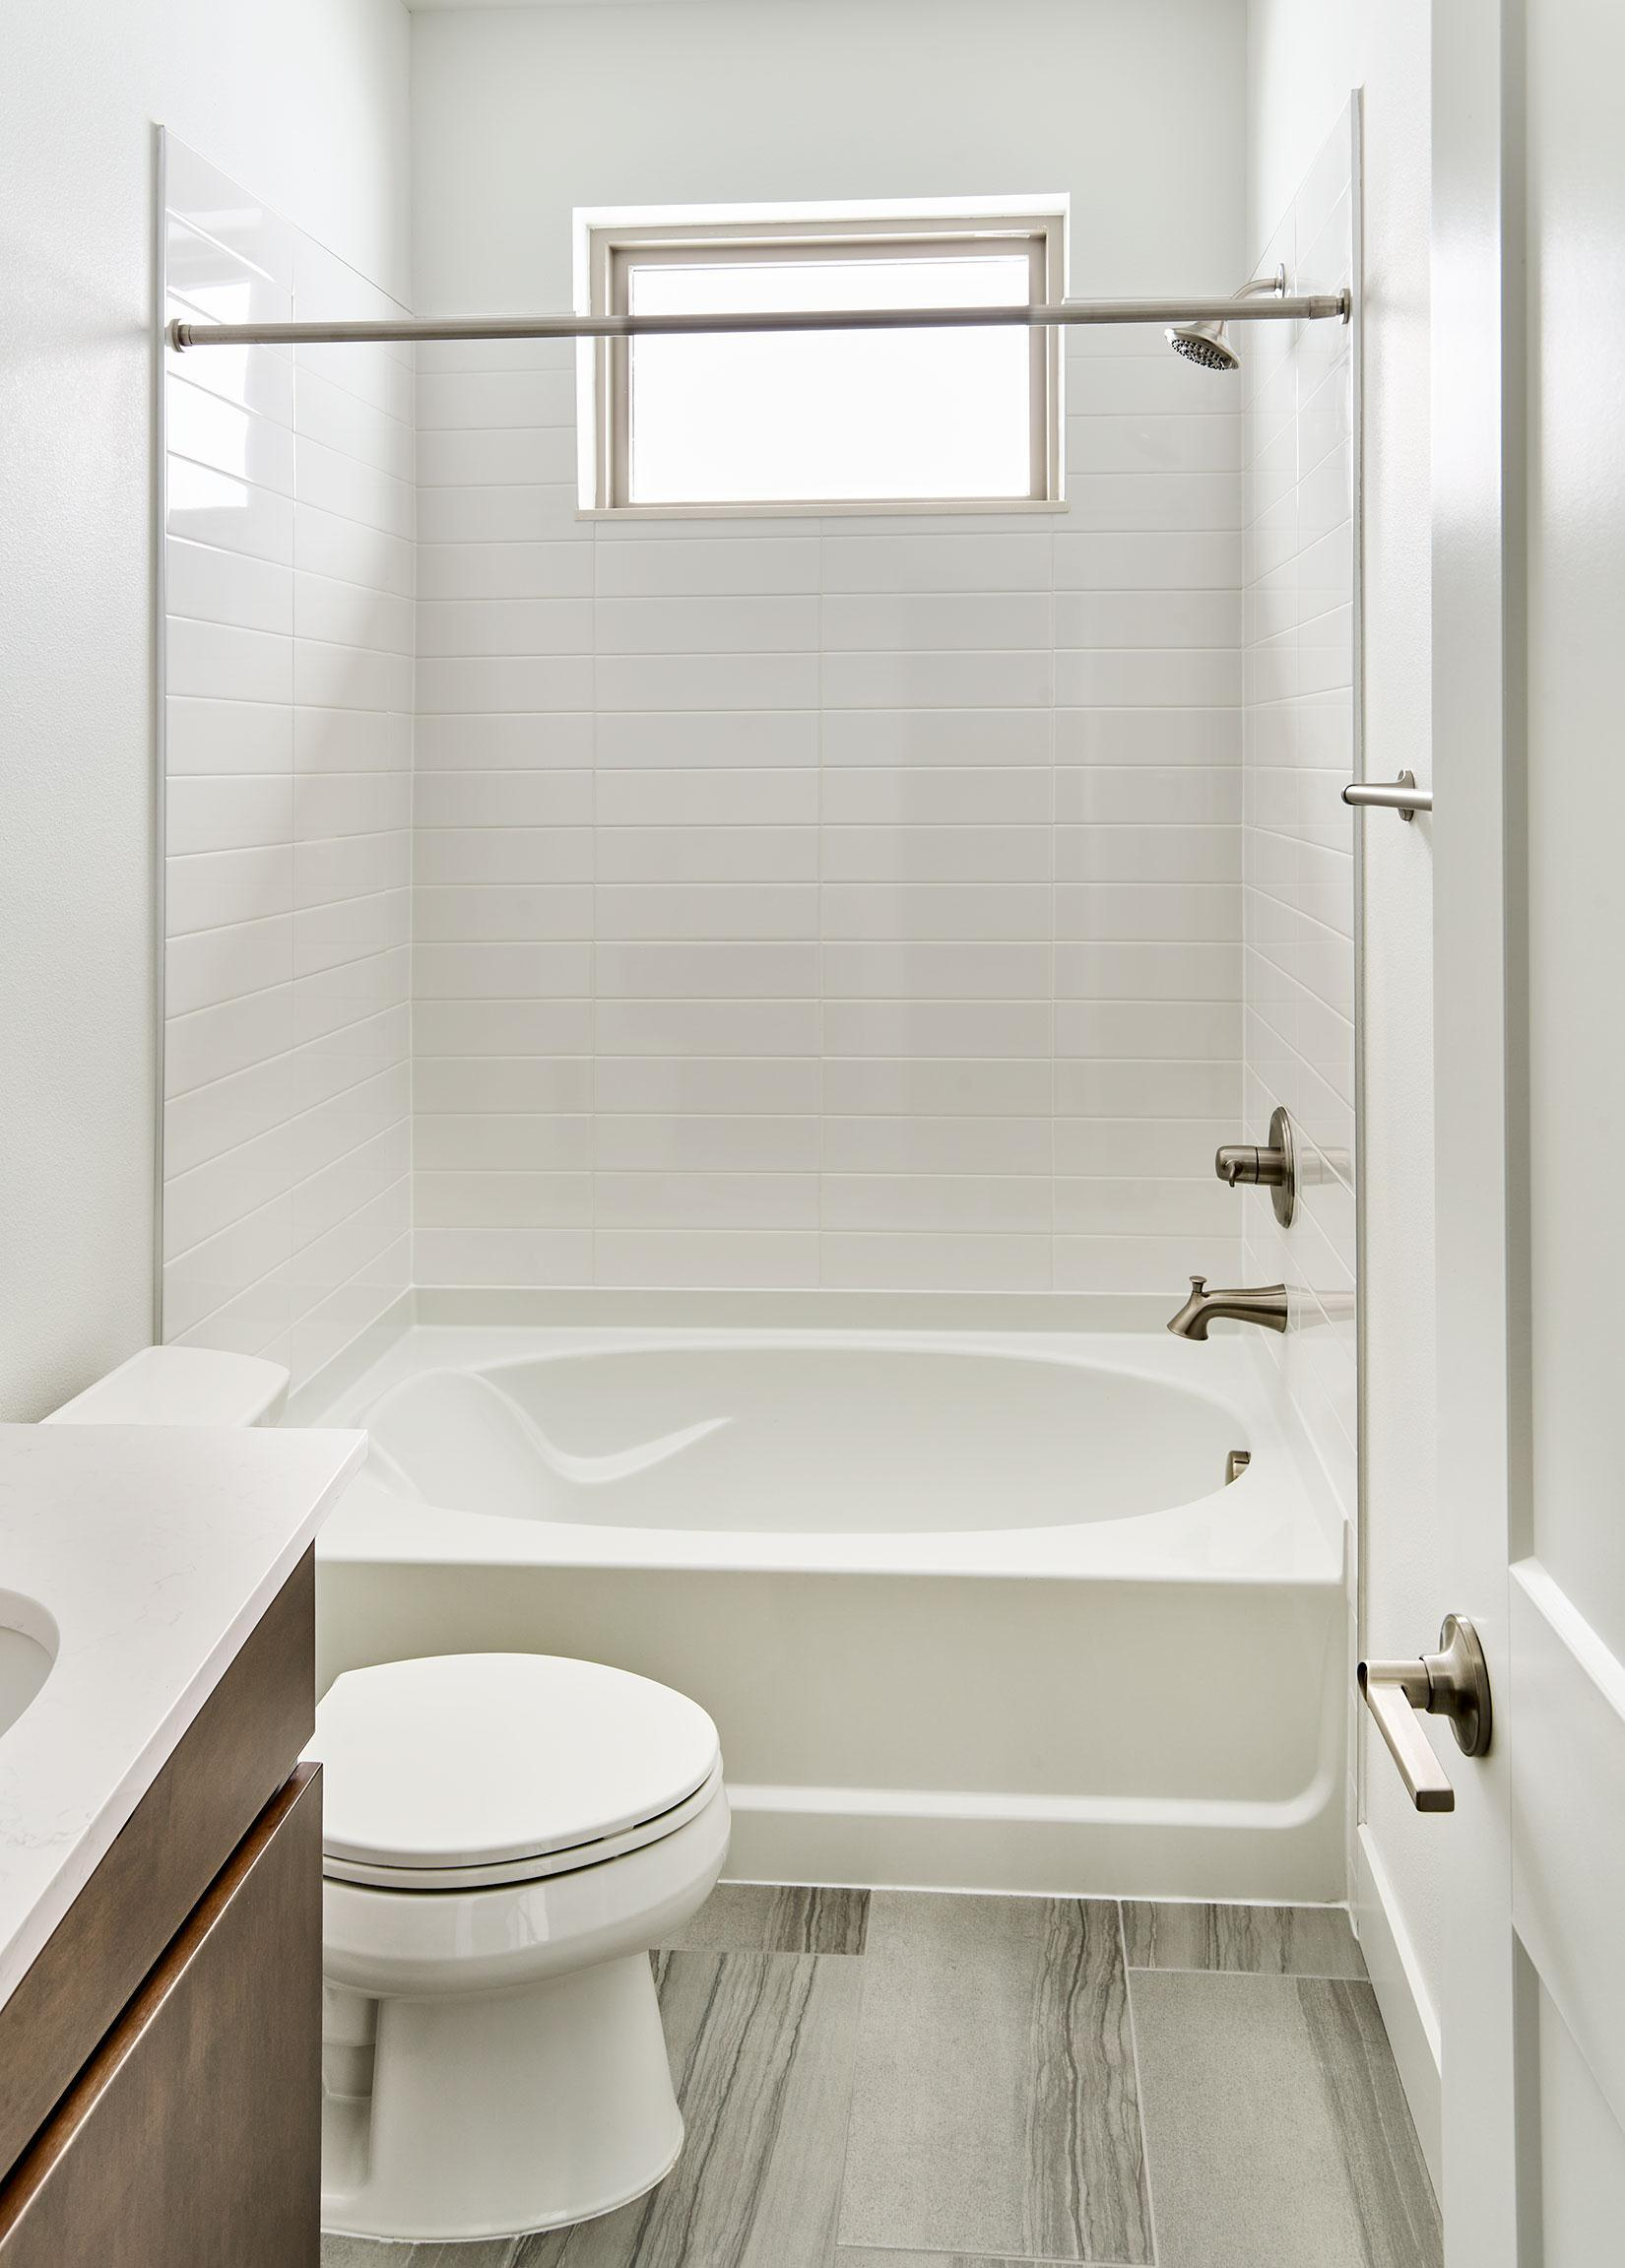 Bathroom featured in the Elkhorn Townhome - Uphill C - end unit By Rendezvous Colorado